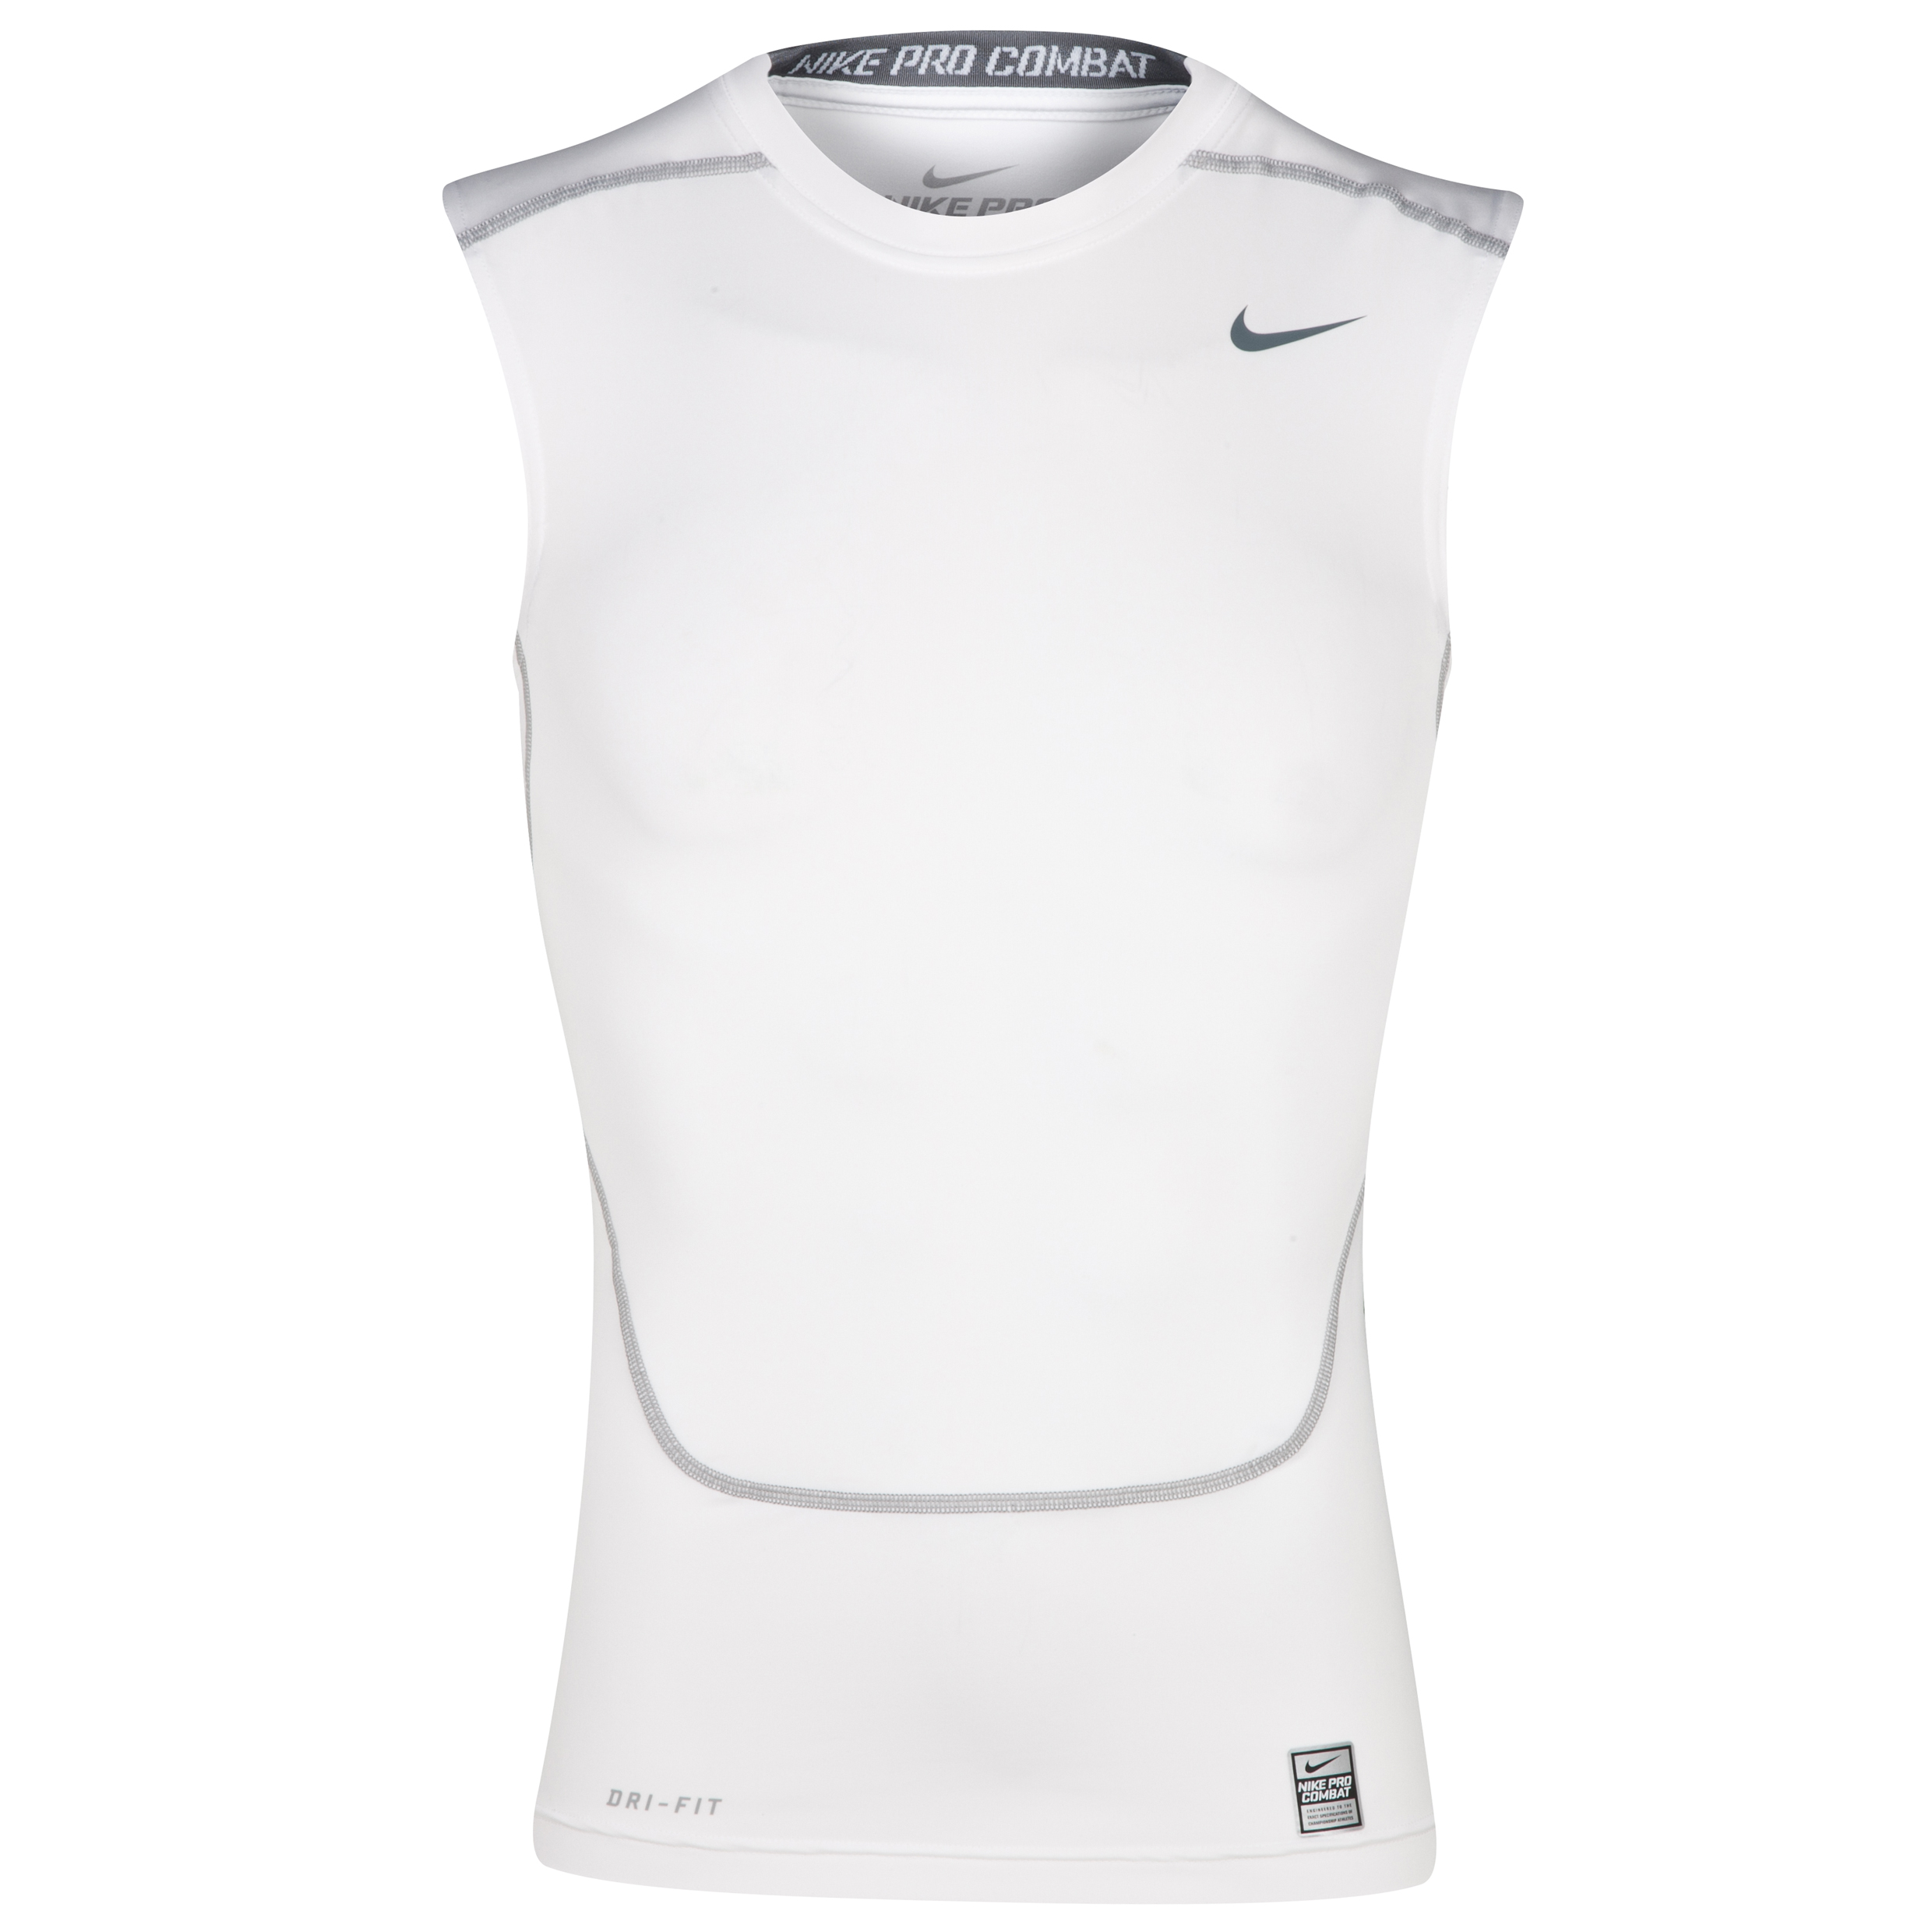 Nike Pro Combat Core Base Layer Top - Sleeveless White